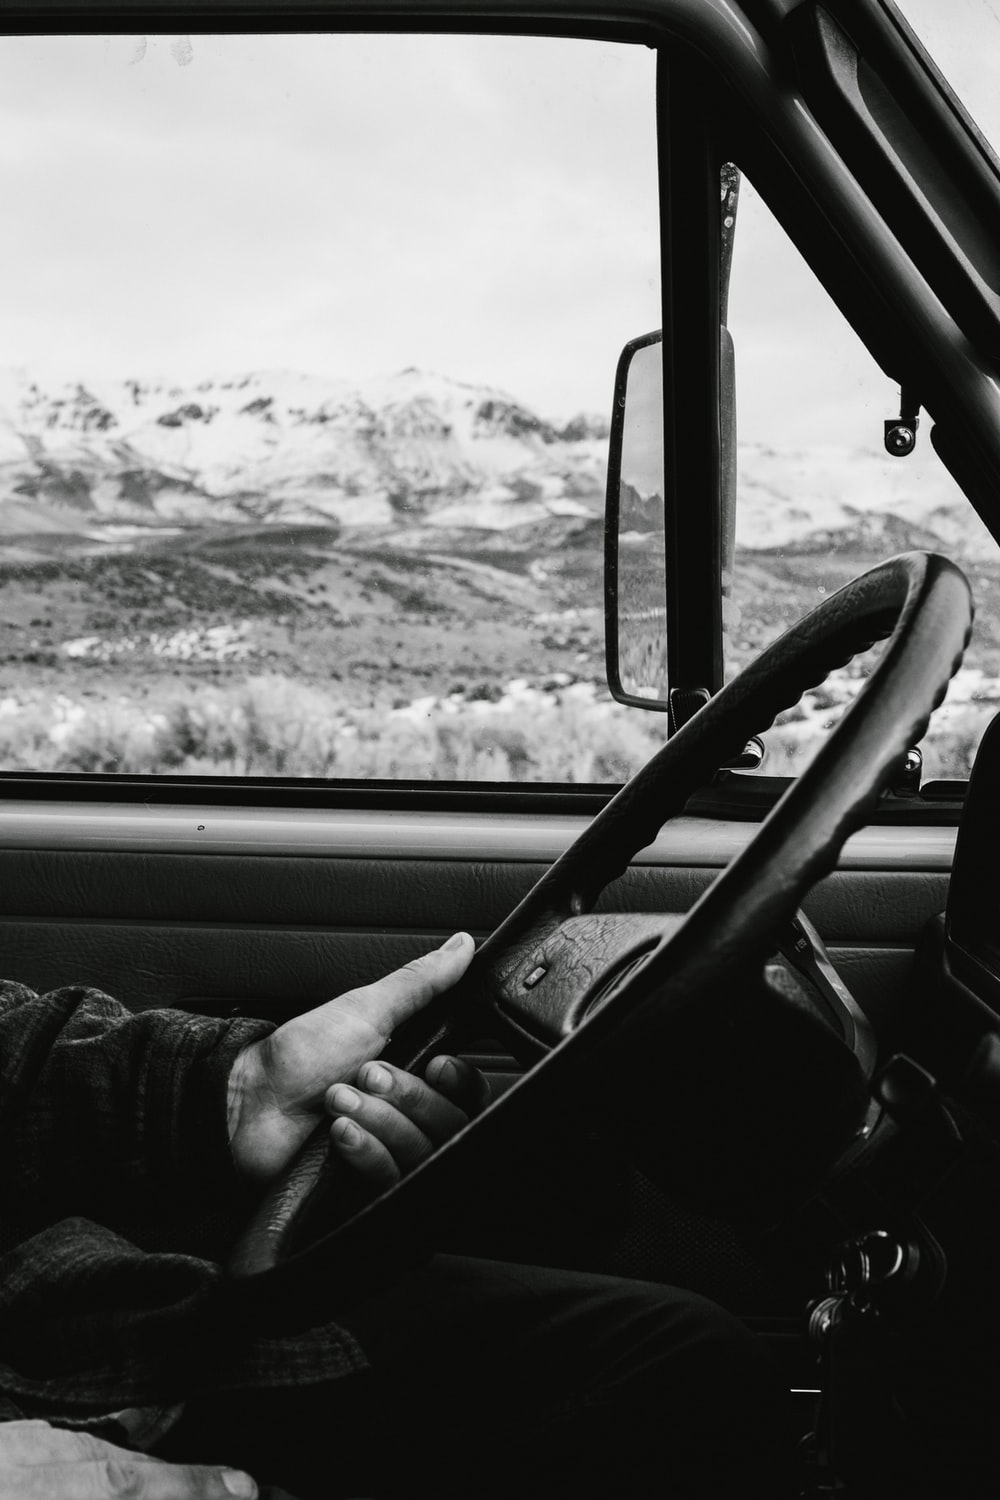 grayscale photo of man driving vehicle